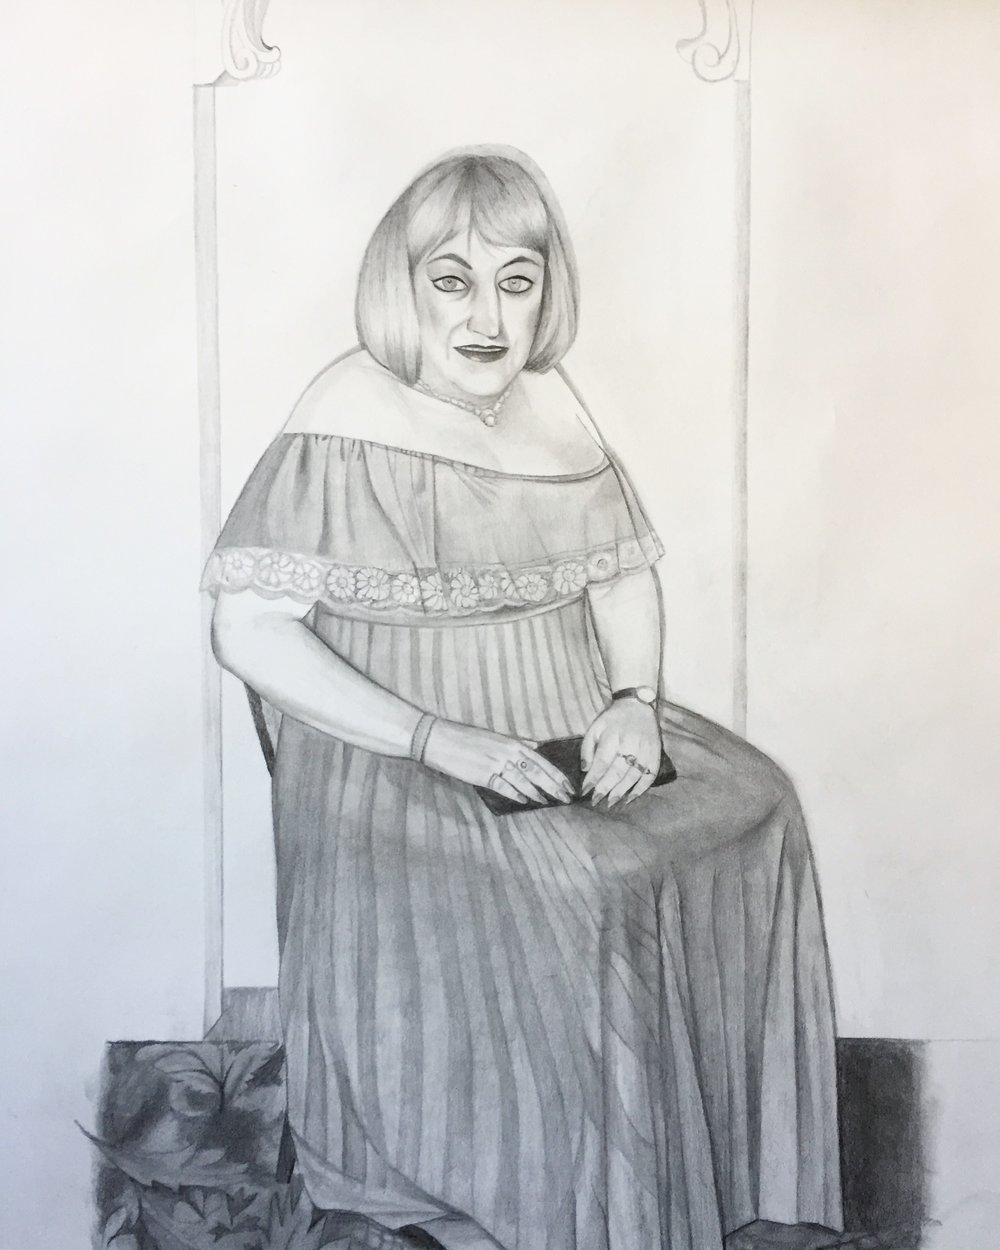 Erica Eyres, Veronica, 2018, pencil on paper, 38 x 28 inches